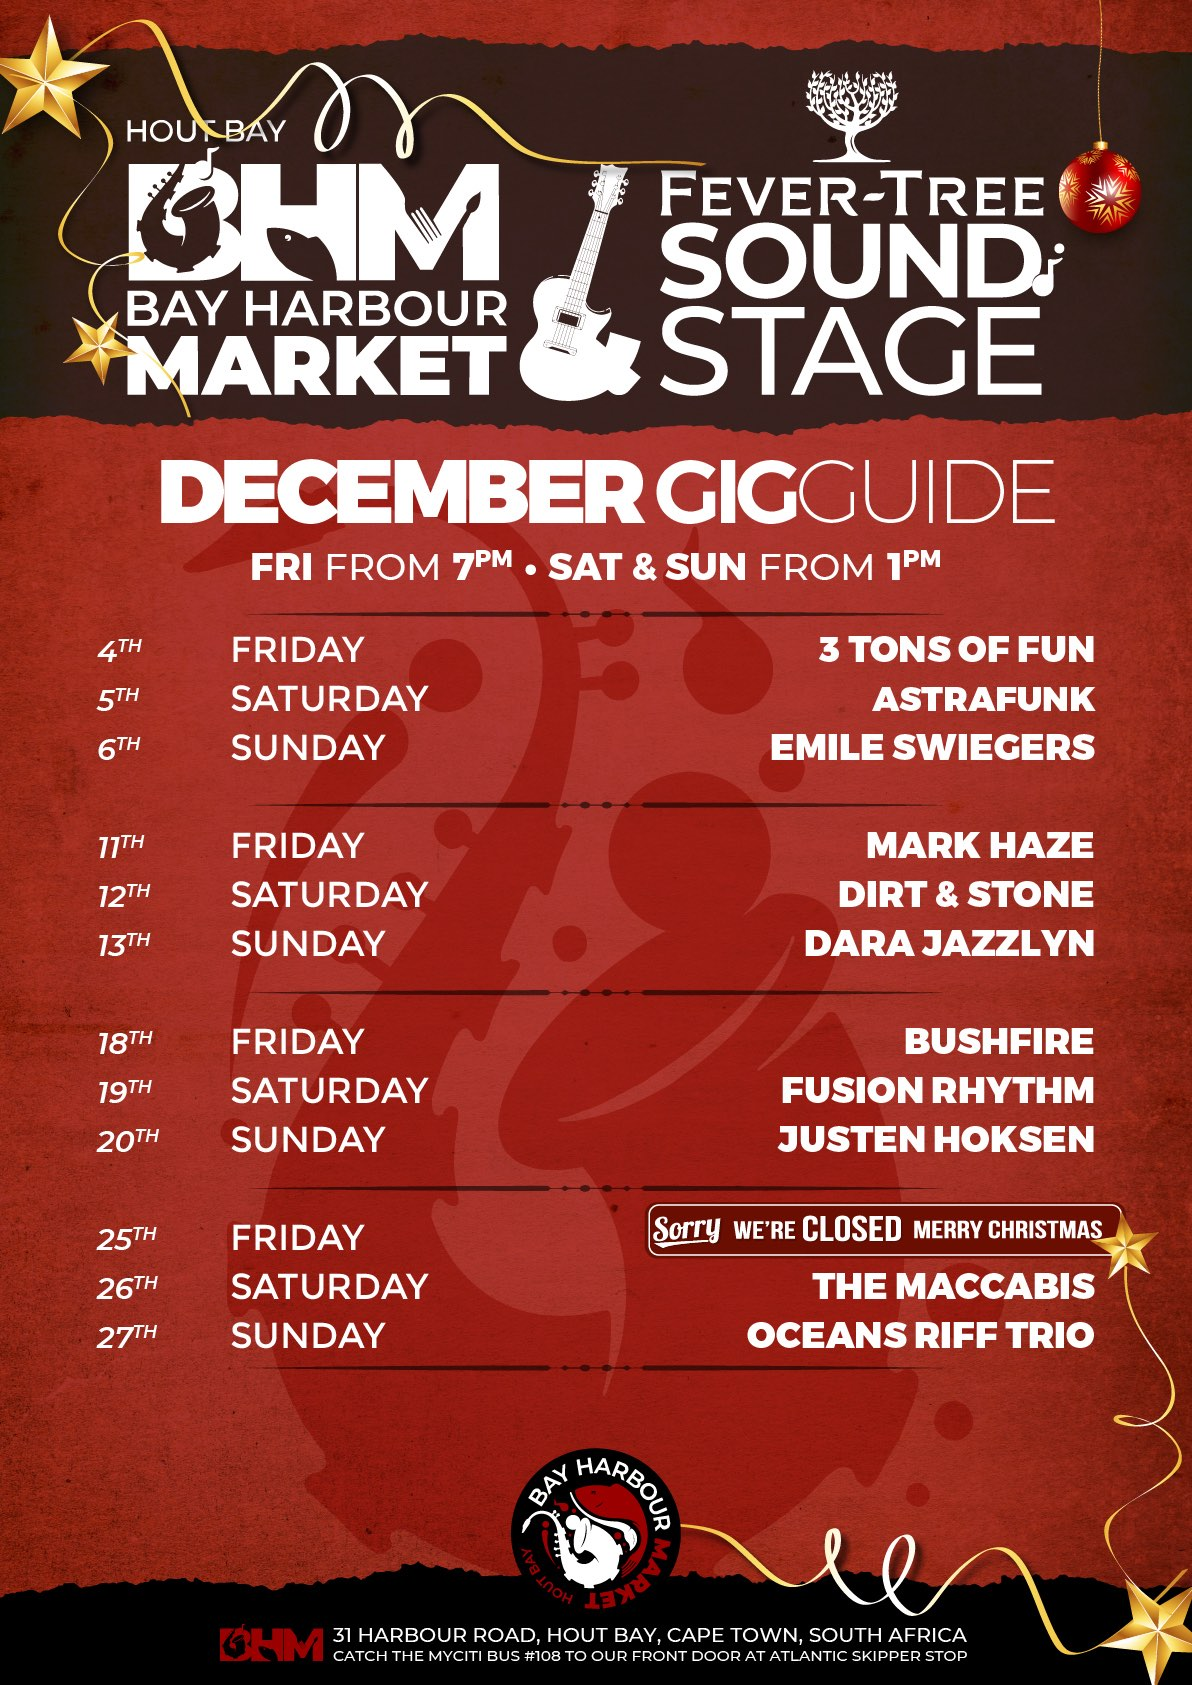 the bay harbour market gig guide December 2020